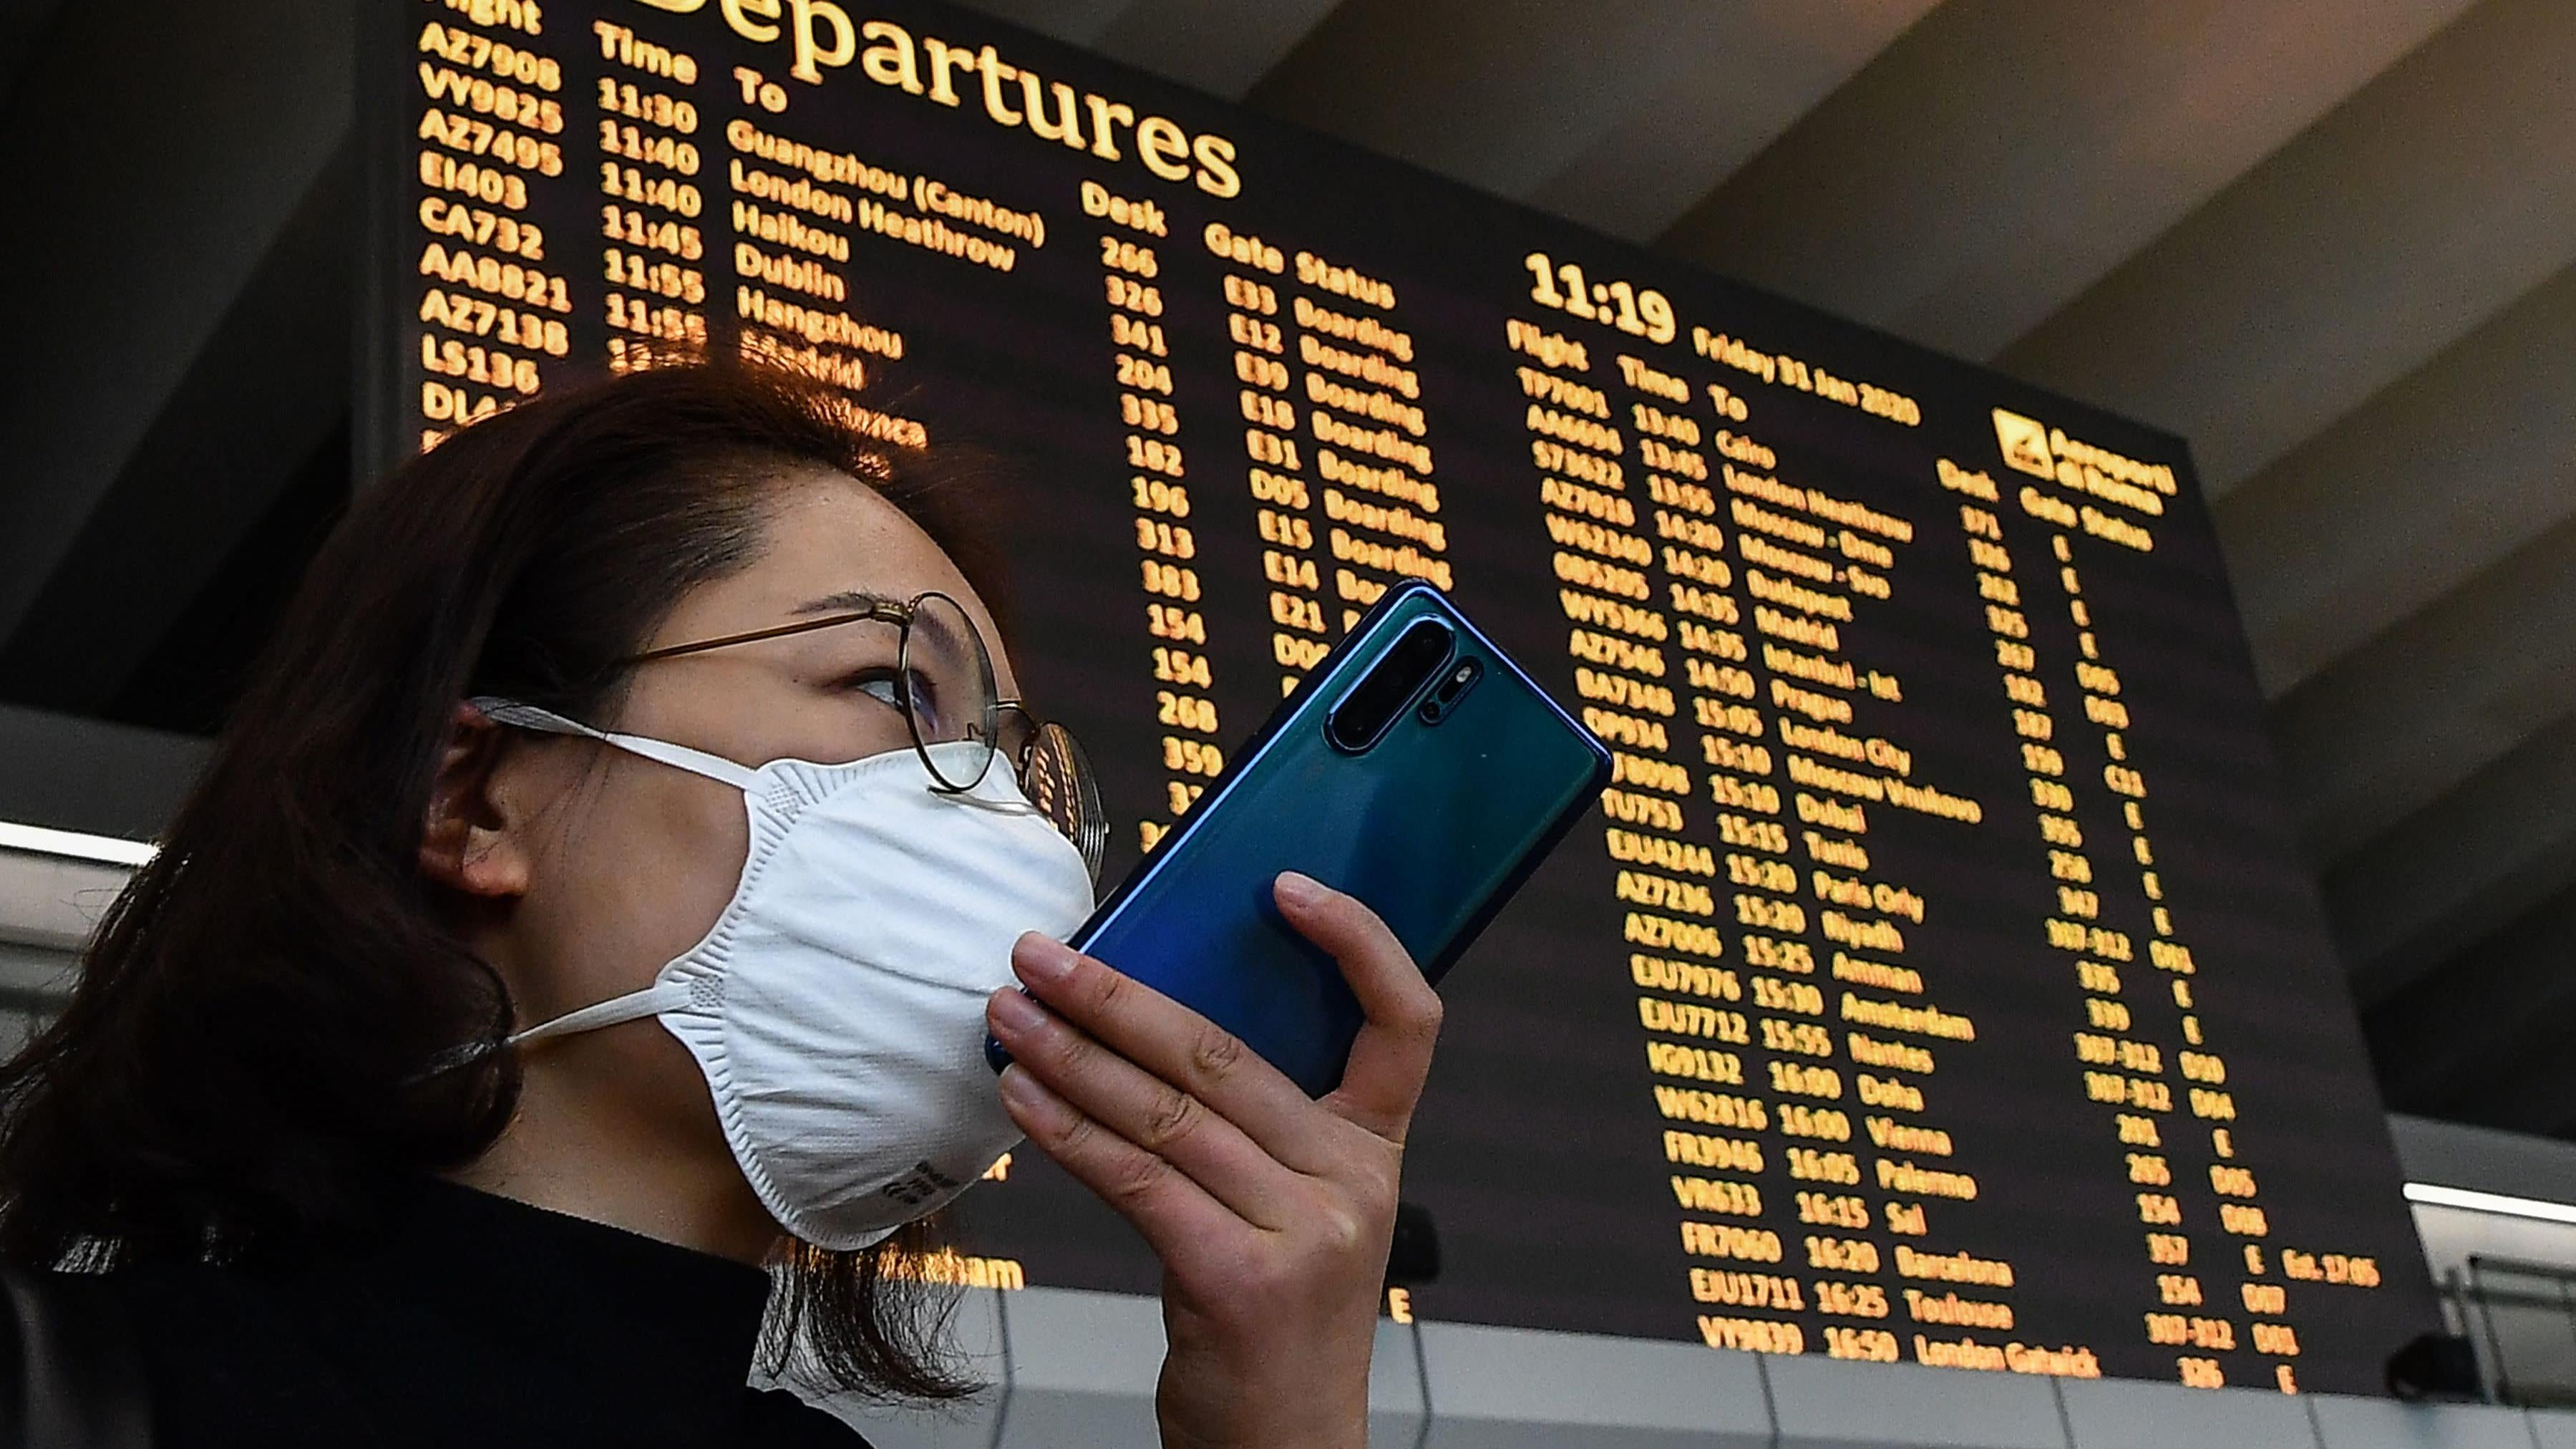 Delta And American Cancel All Flights To China For Months As Coronavirus Death Toll Hits 213